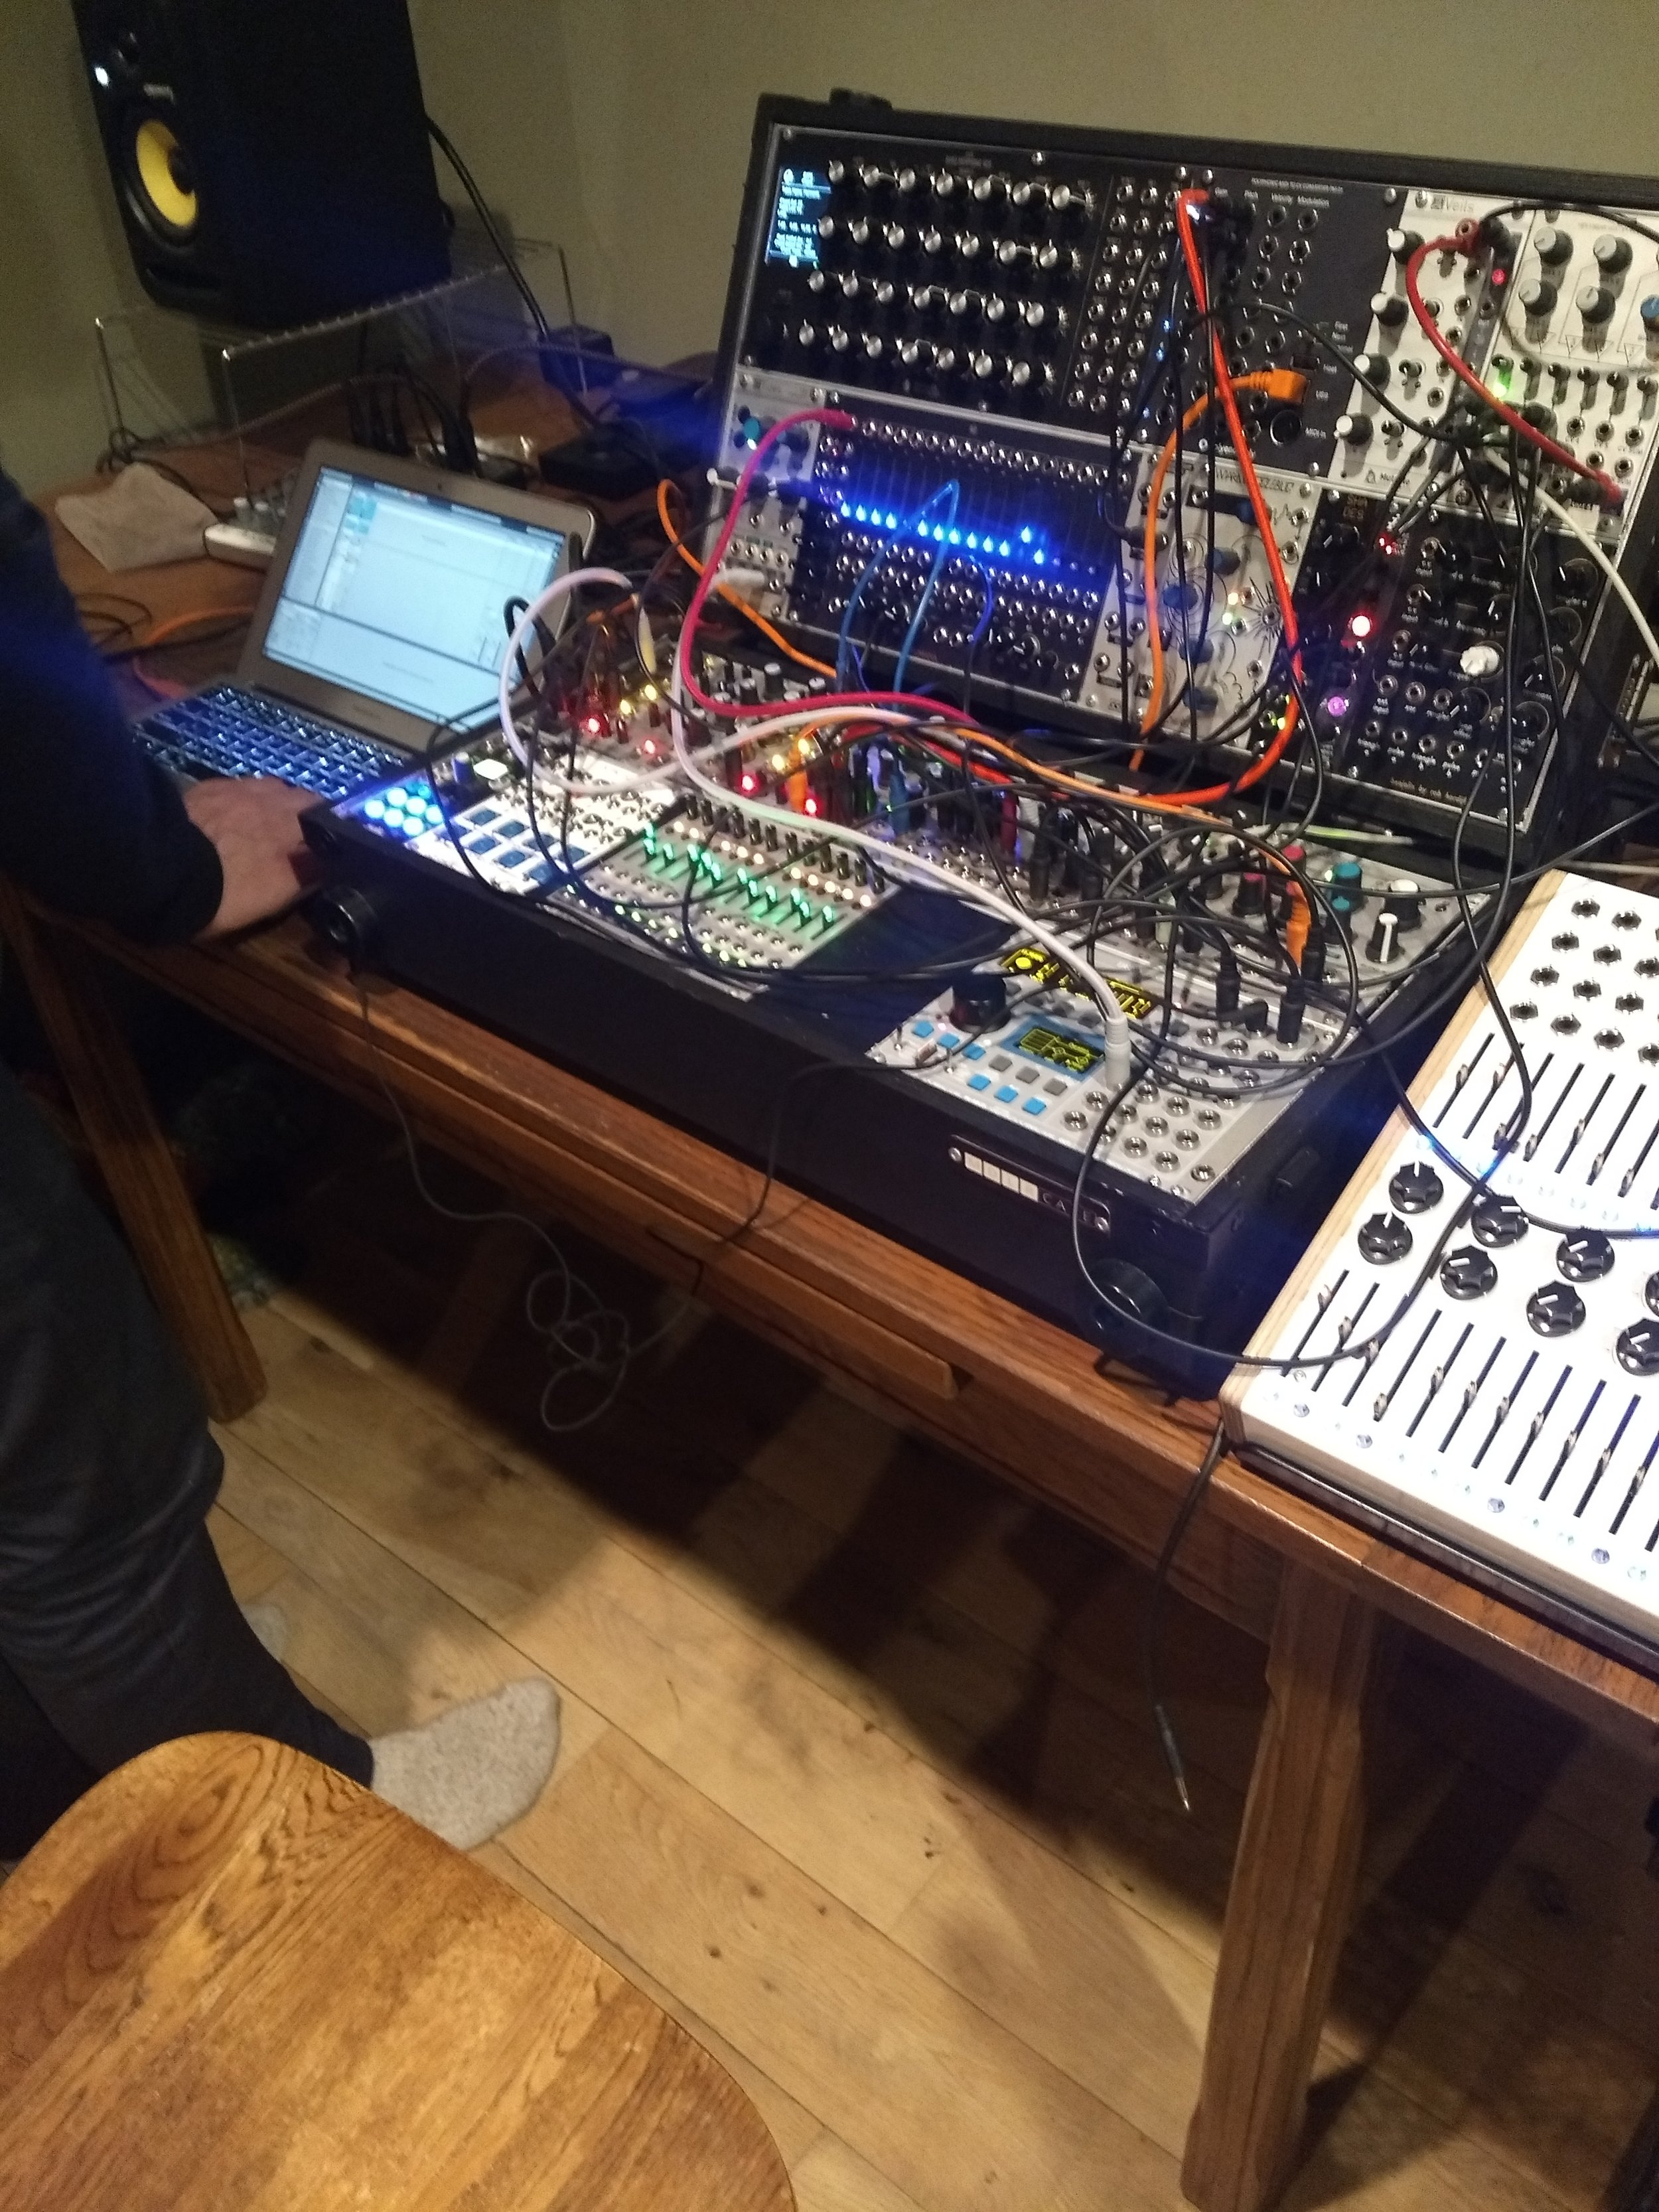 Tim, a modular synthesizer musician, uses Ableton for signal processing.